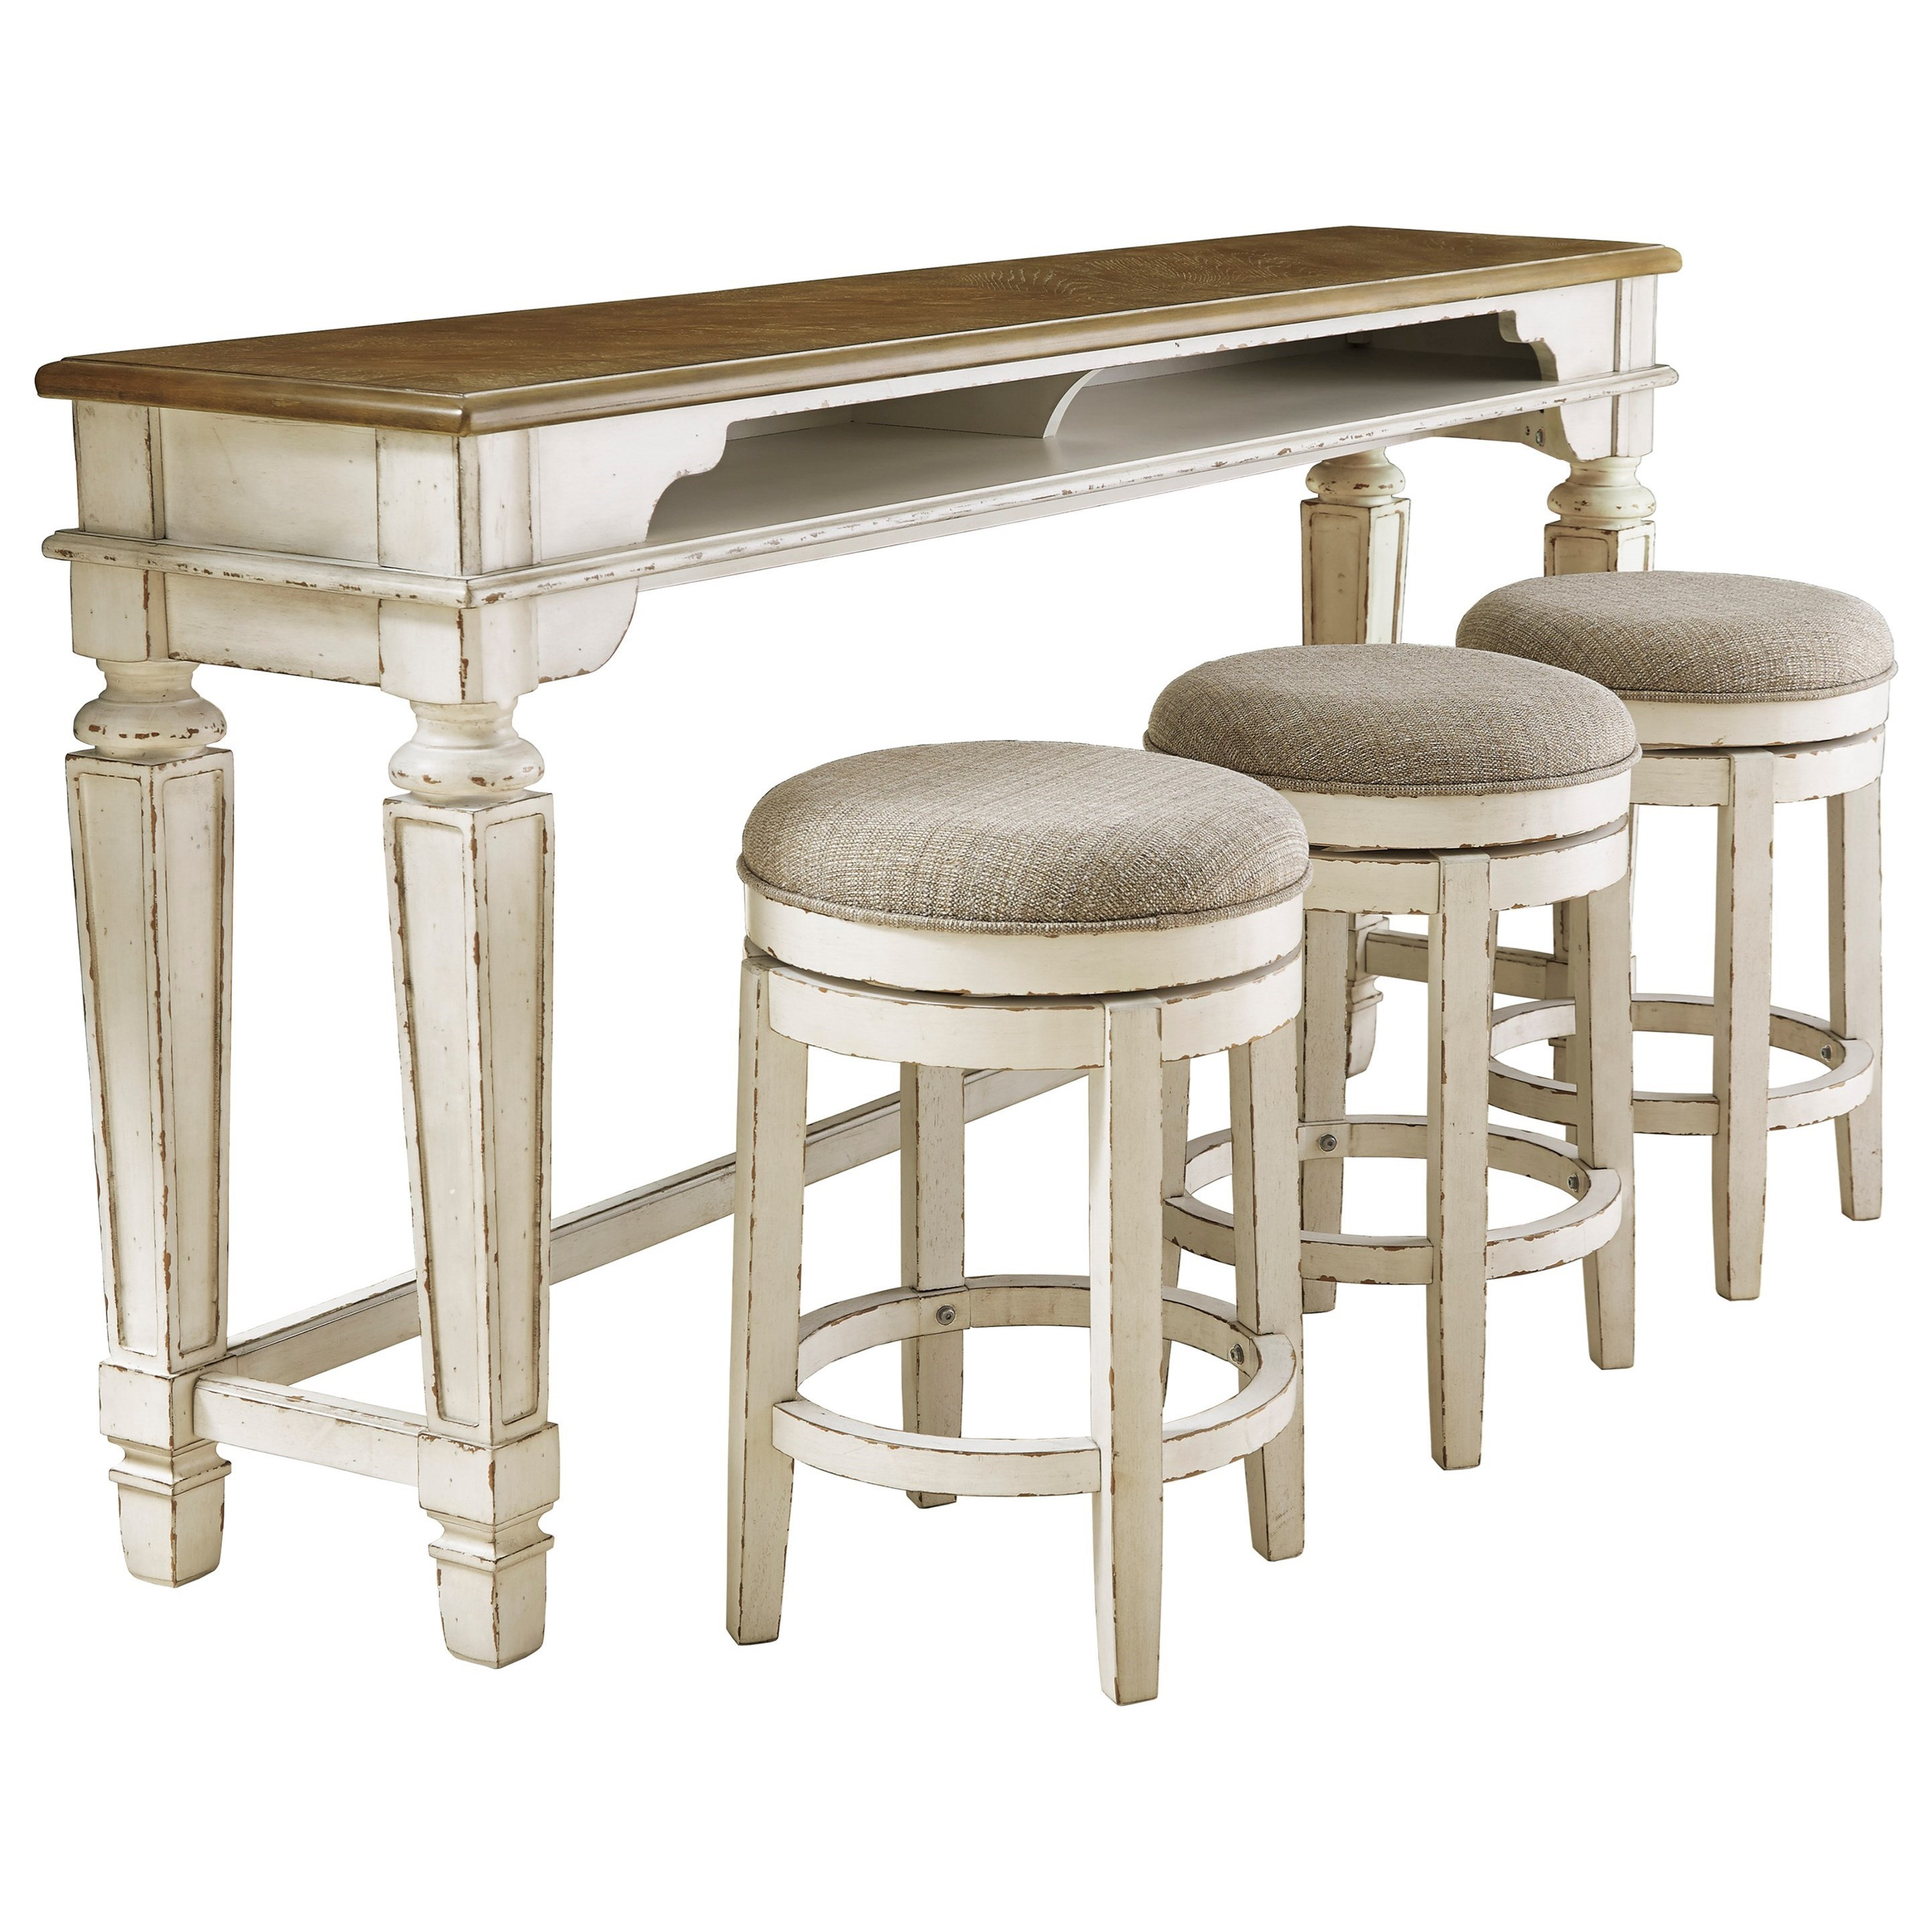 Two-Tone Long Counter Table/Sofa Table w/ 3 Upholstered Swivel Stools